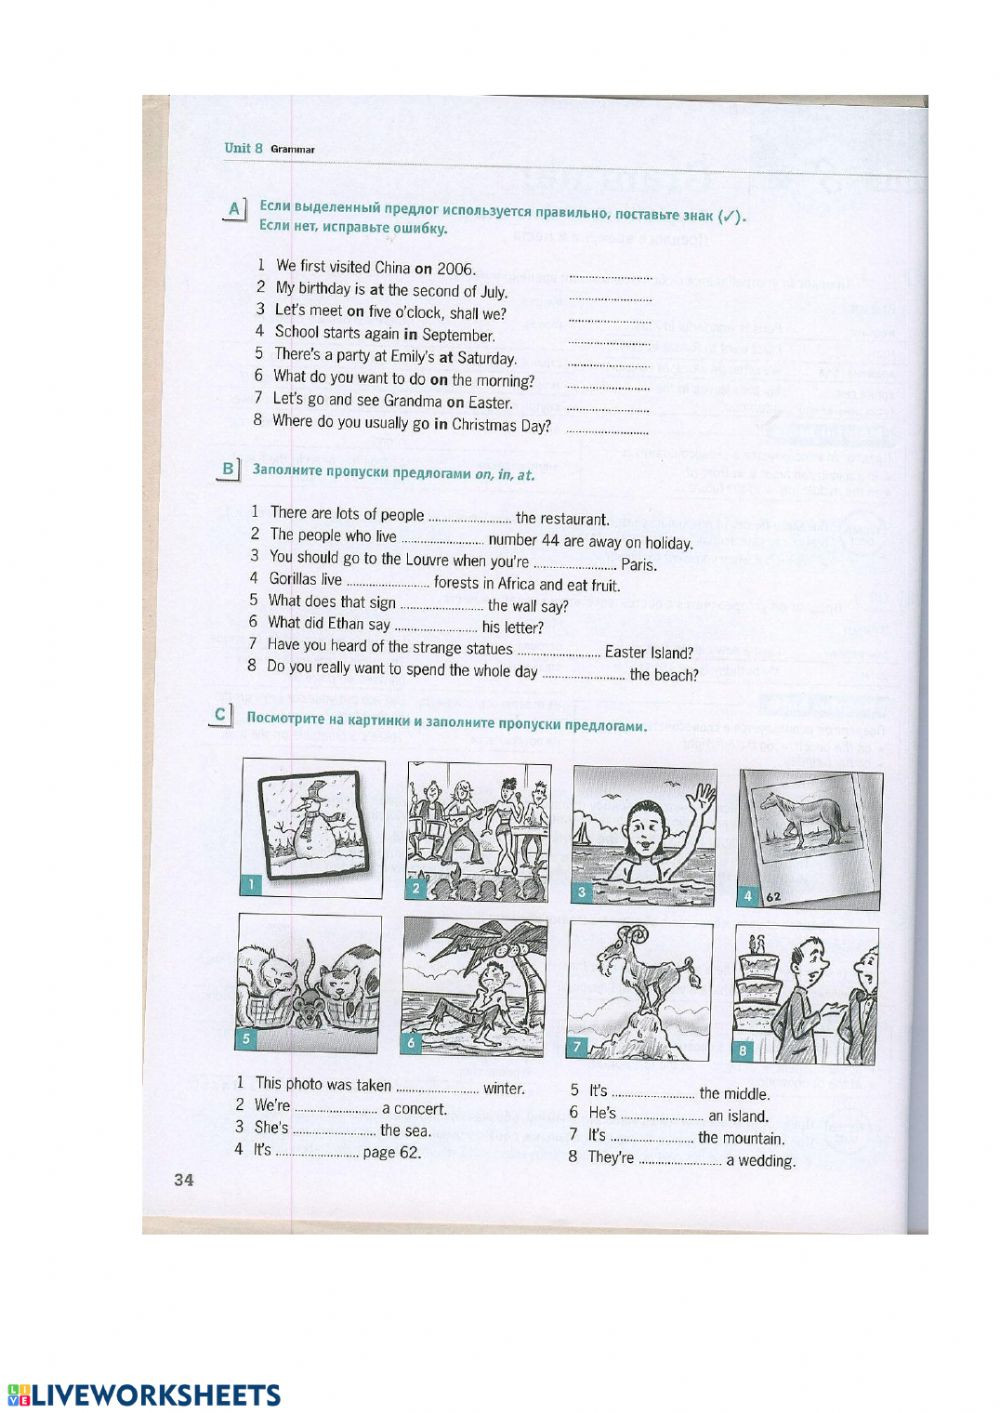 Prepositions Worksheets Middle School Prepositions Prepositions All Types Online Exercise